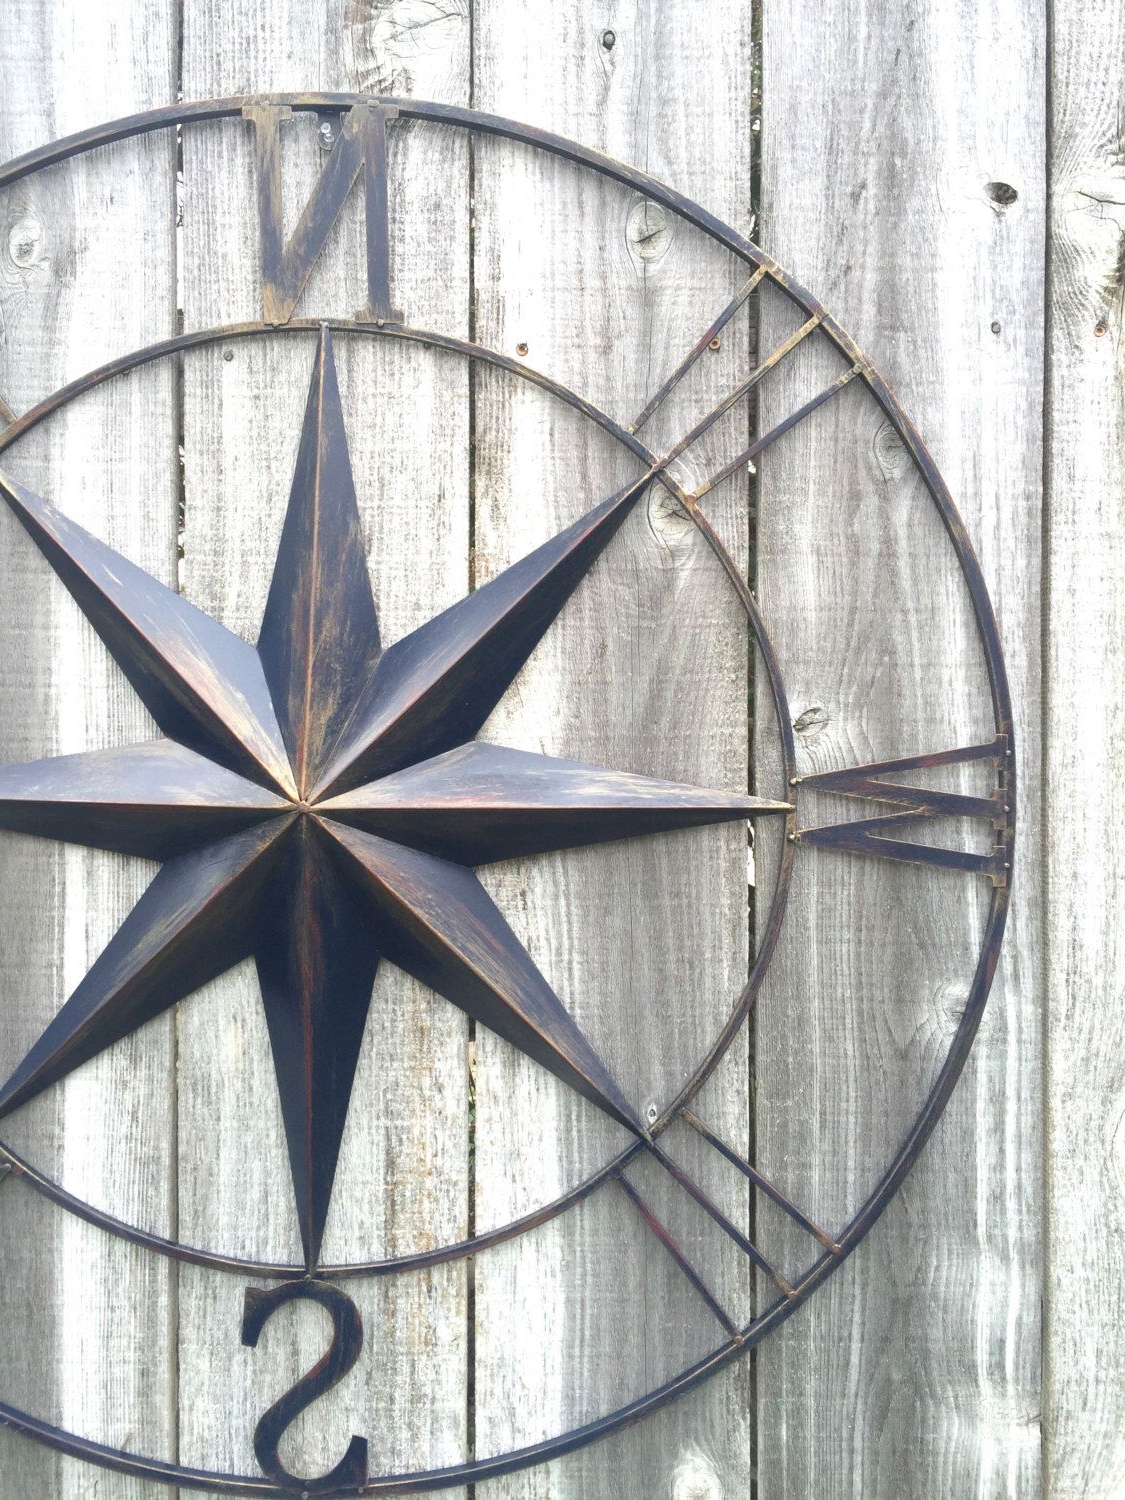 Nautical Decor, Navy Blue Compass, Compass Wall Art, Metal Inside 2020 Compass Metal Wall Décor By Beachcrest Home (View 20 of 20)